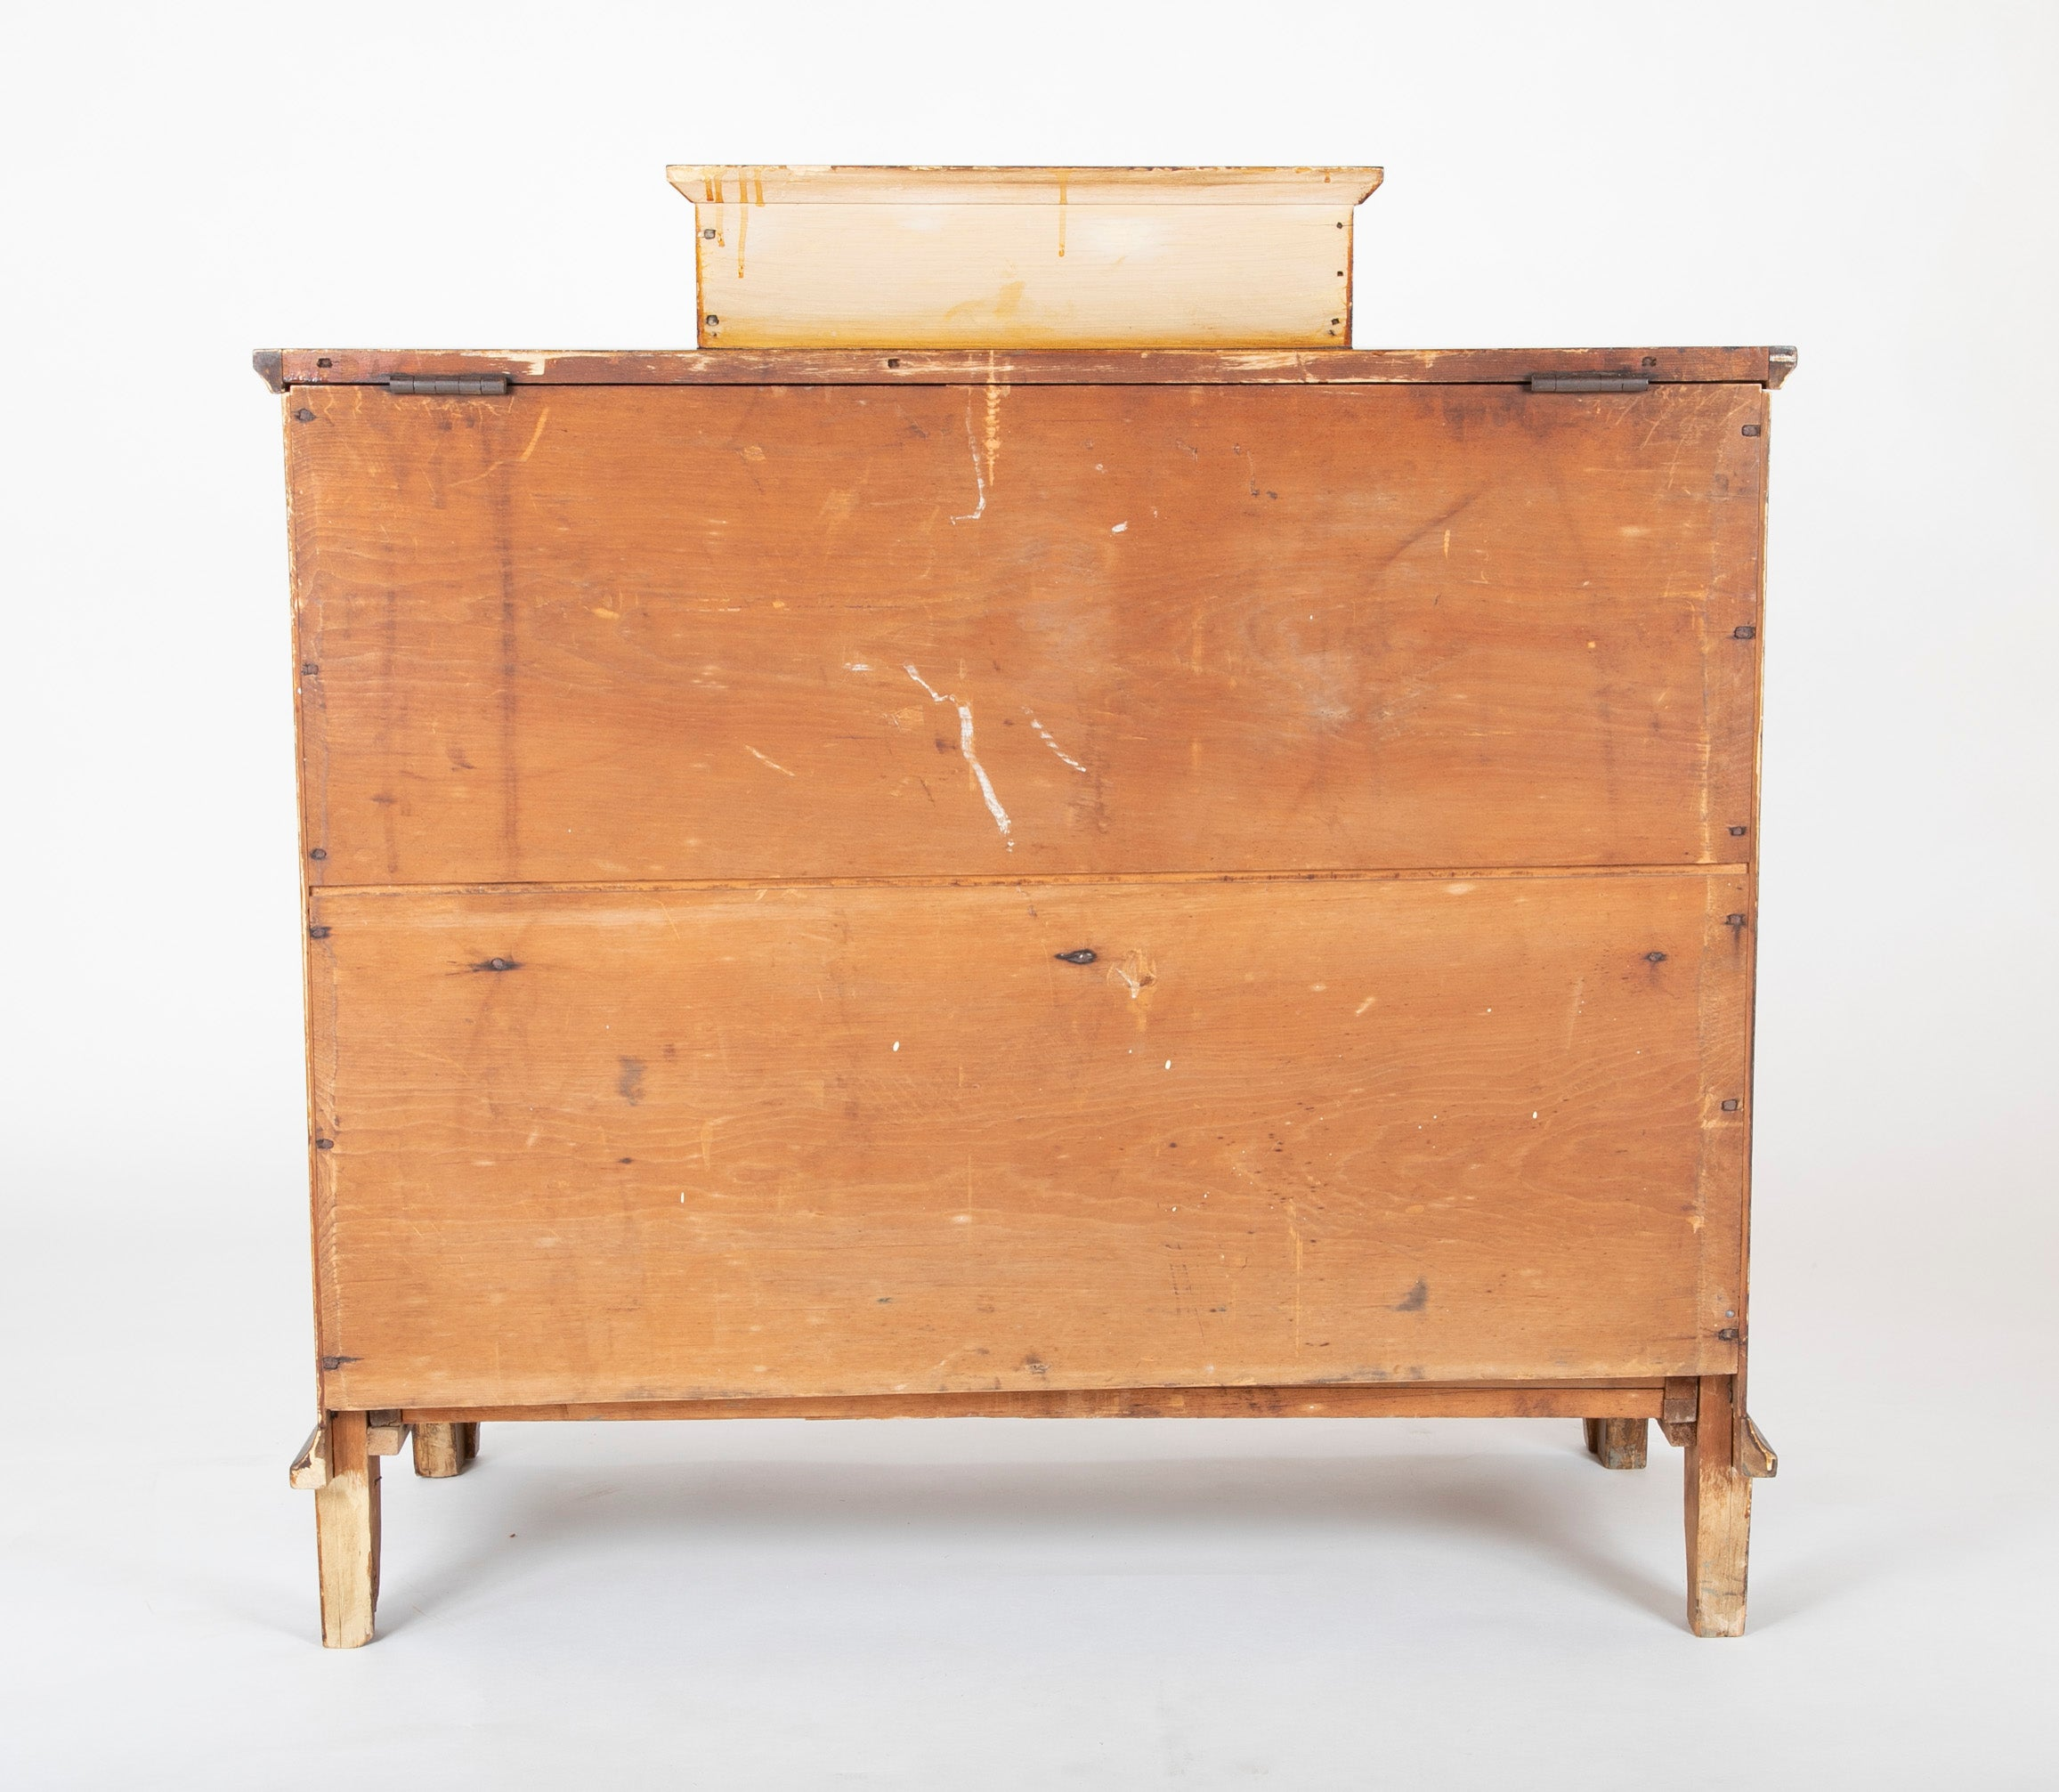 American Lift-Top Blanket Chest in Pine with Yellow & Brown Grained Finish